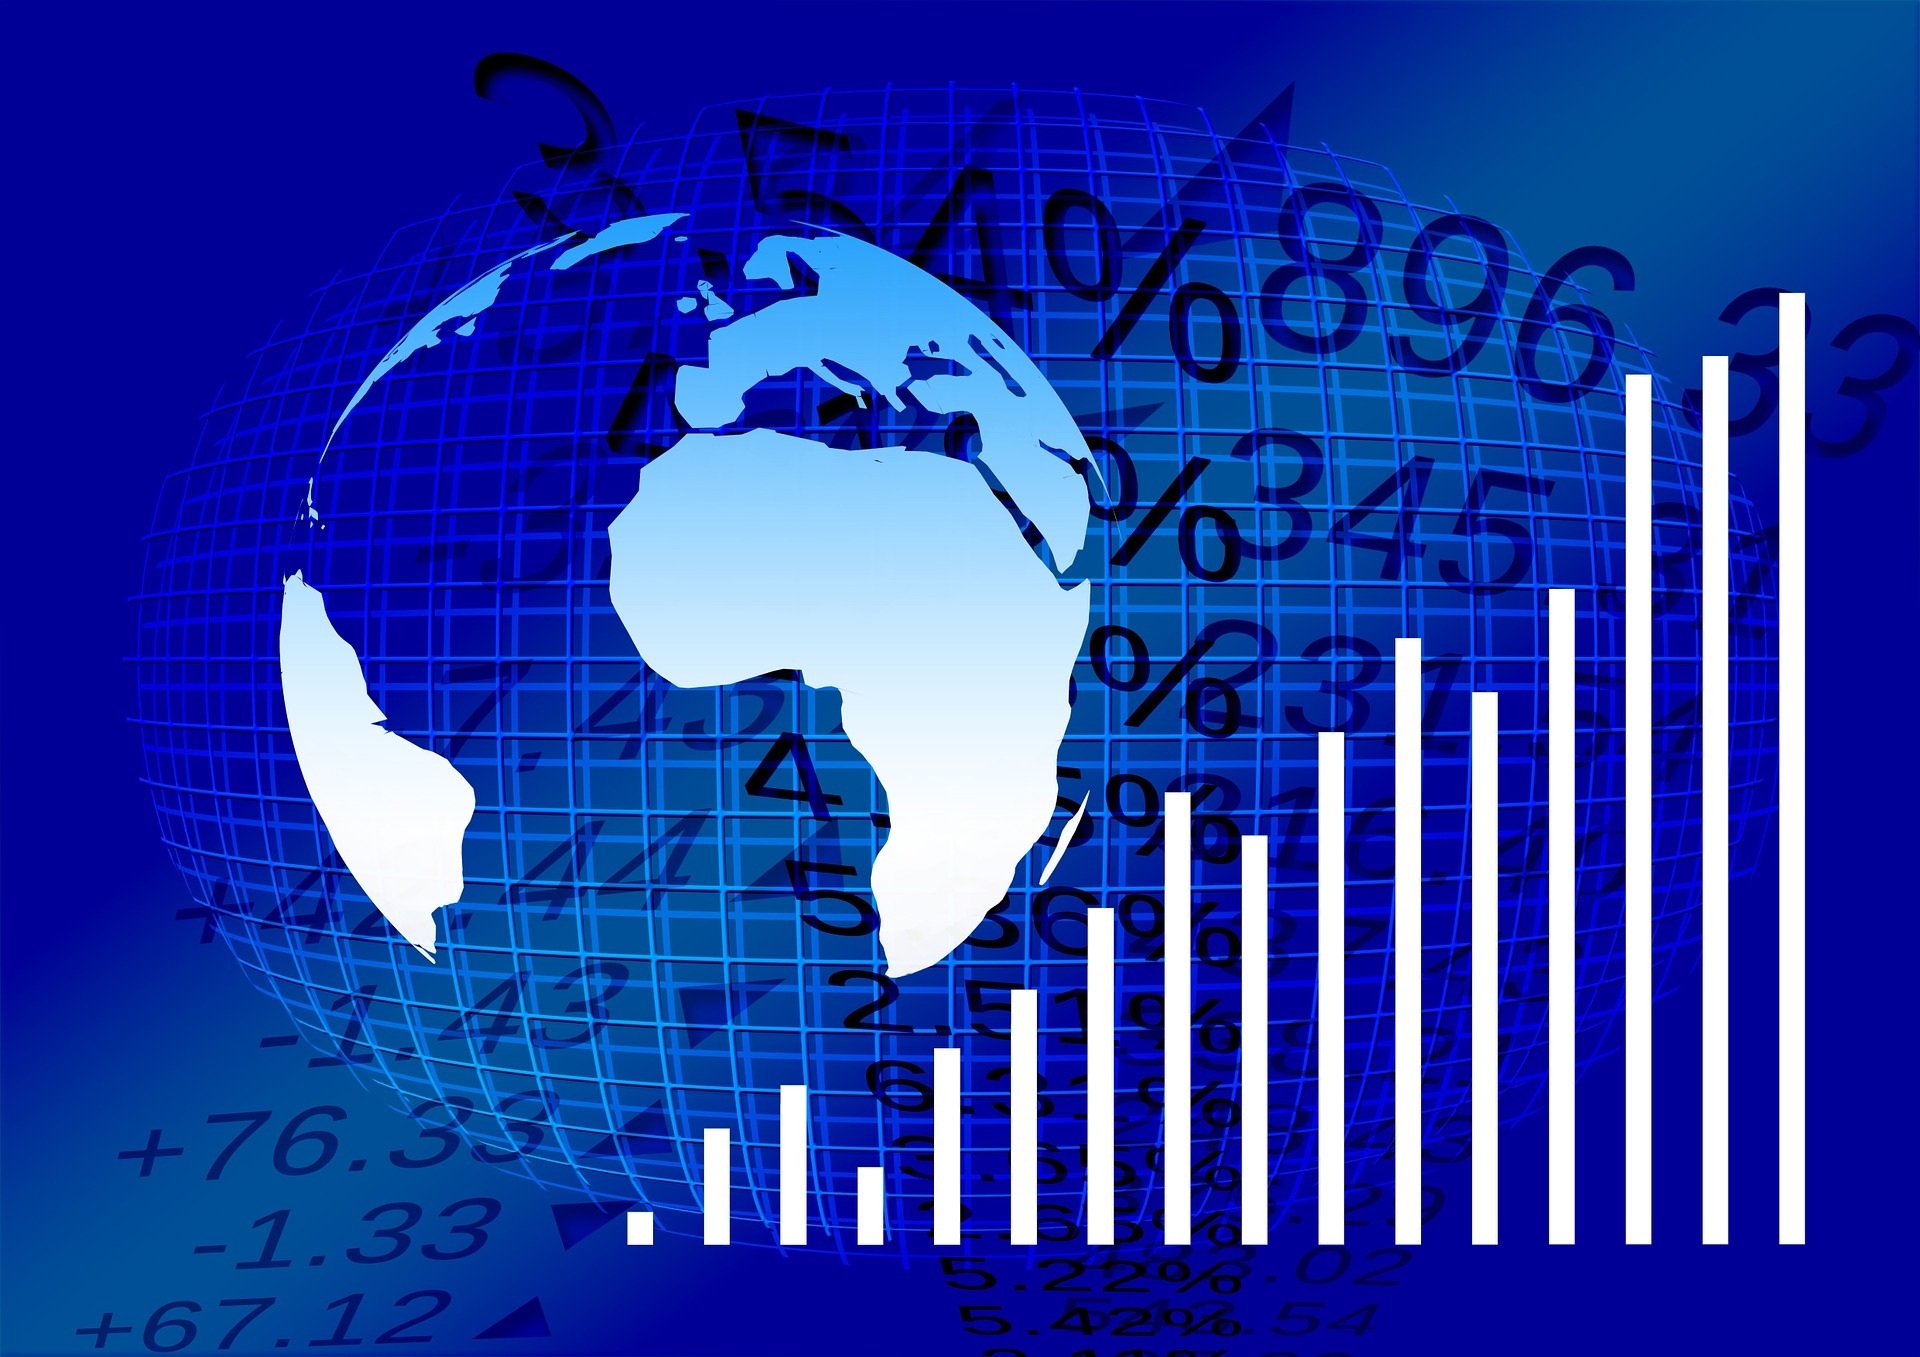 Stock photo of the globe and lines representing the stock market prices